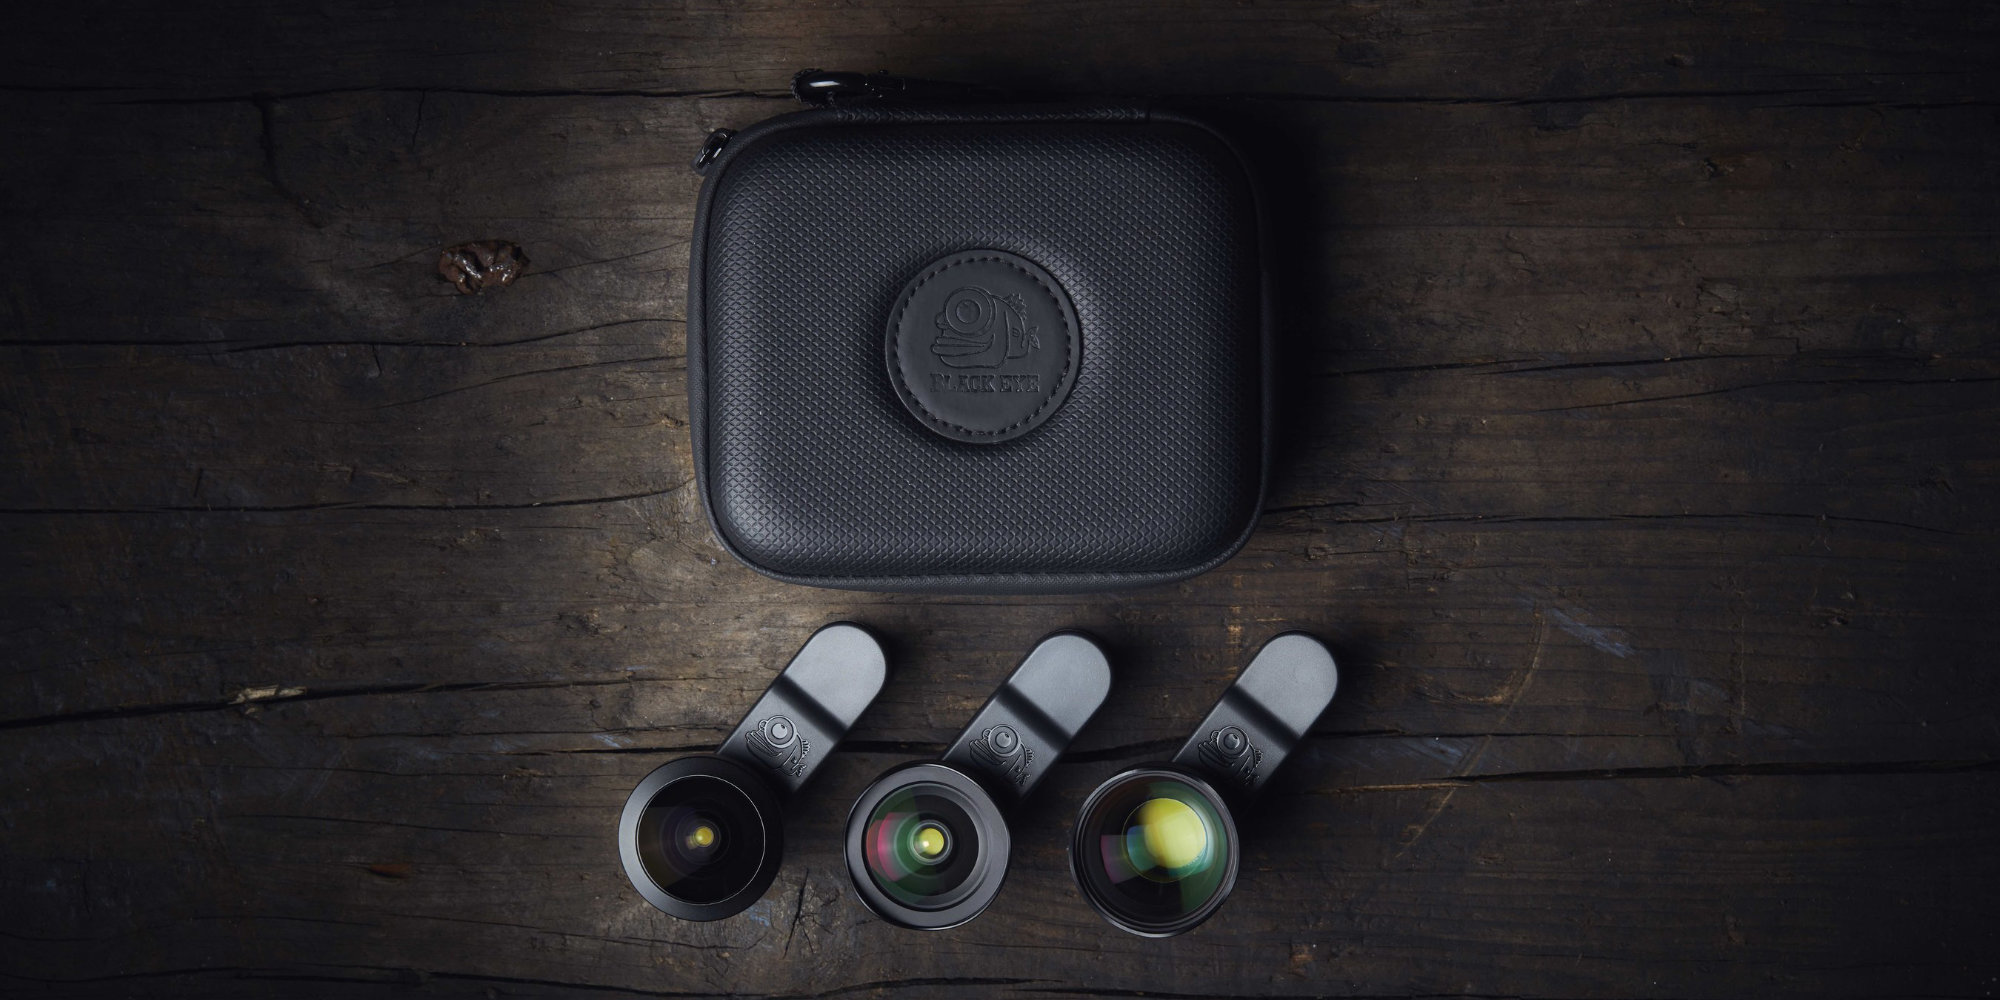 Black Eye focuses on high-end smartphone photography with the launch of new Pro lenses